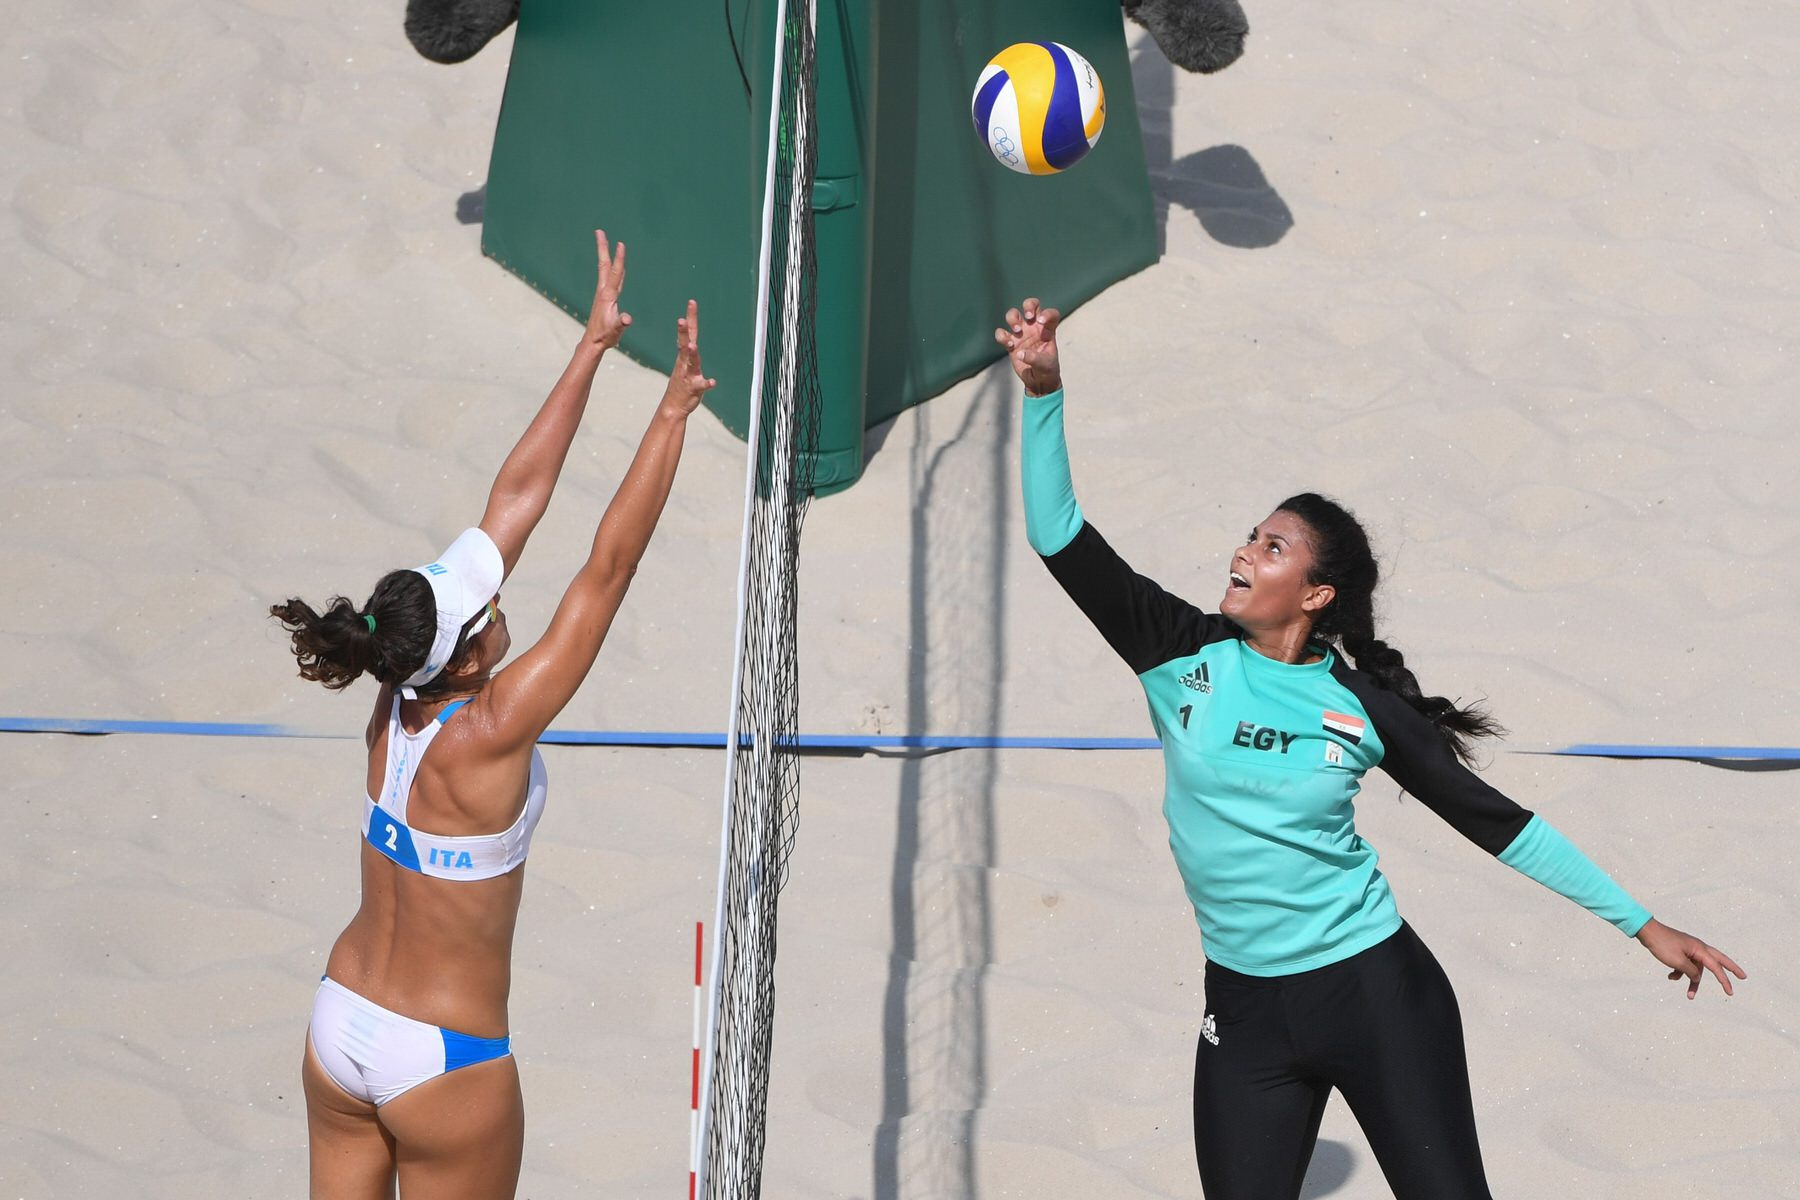 Nada Meawad (R) from Egypt in action against Laura Giombini (L) from Italy during the Women's Preliminary Pool Beach Volleyball match.